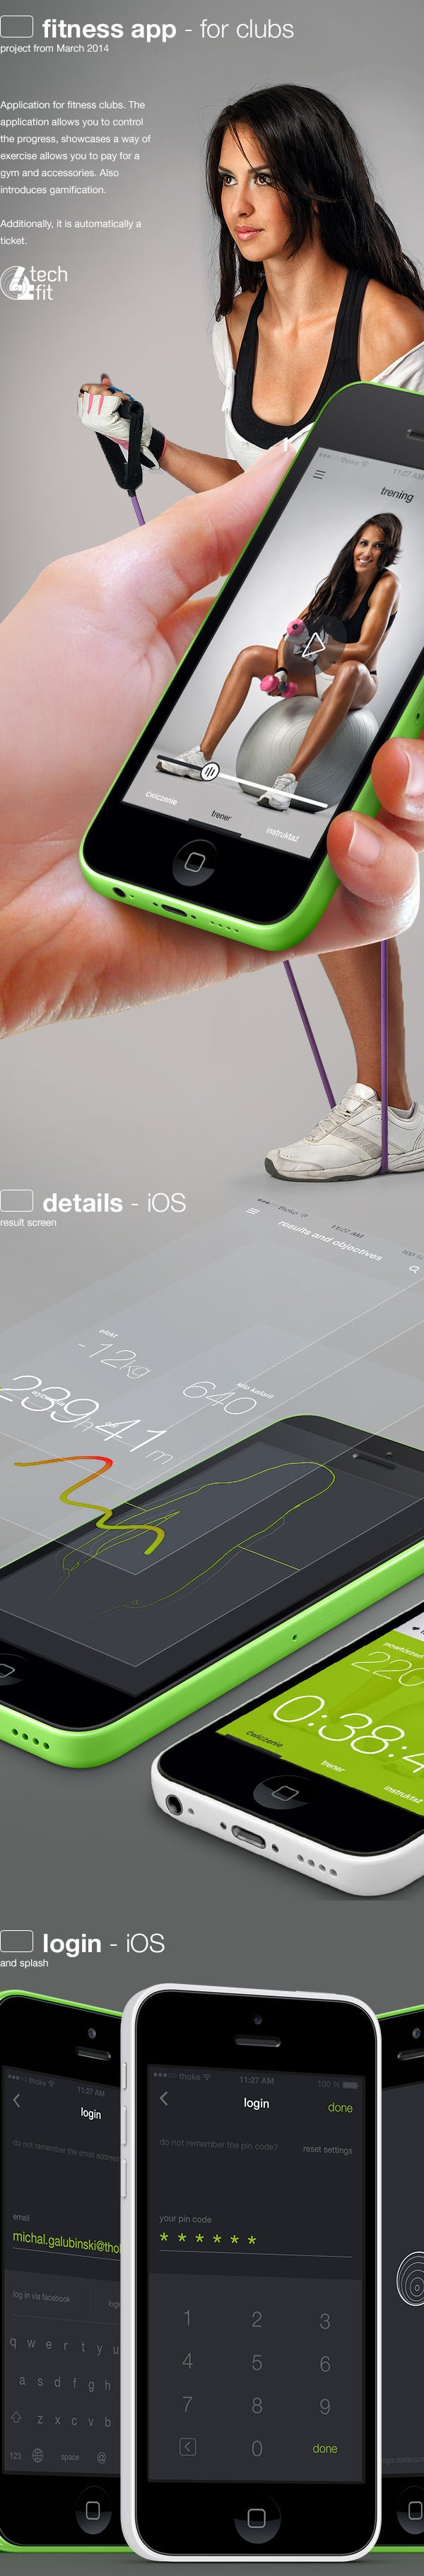 tech4fit app design